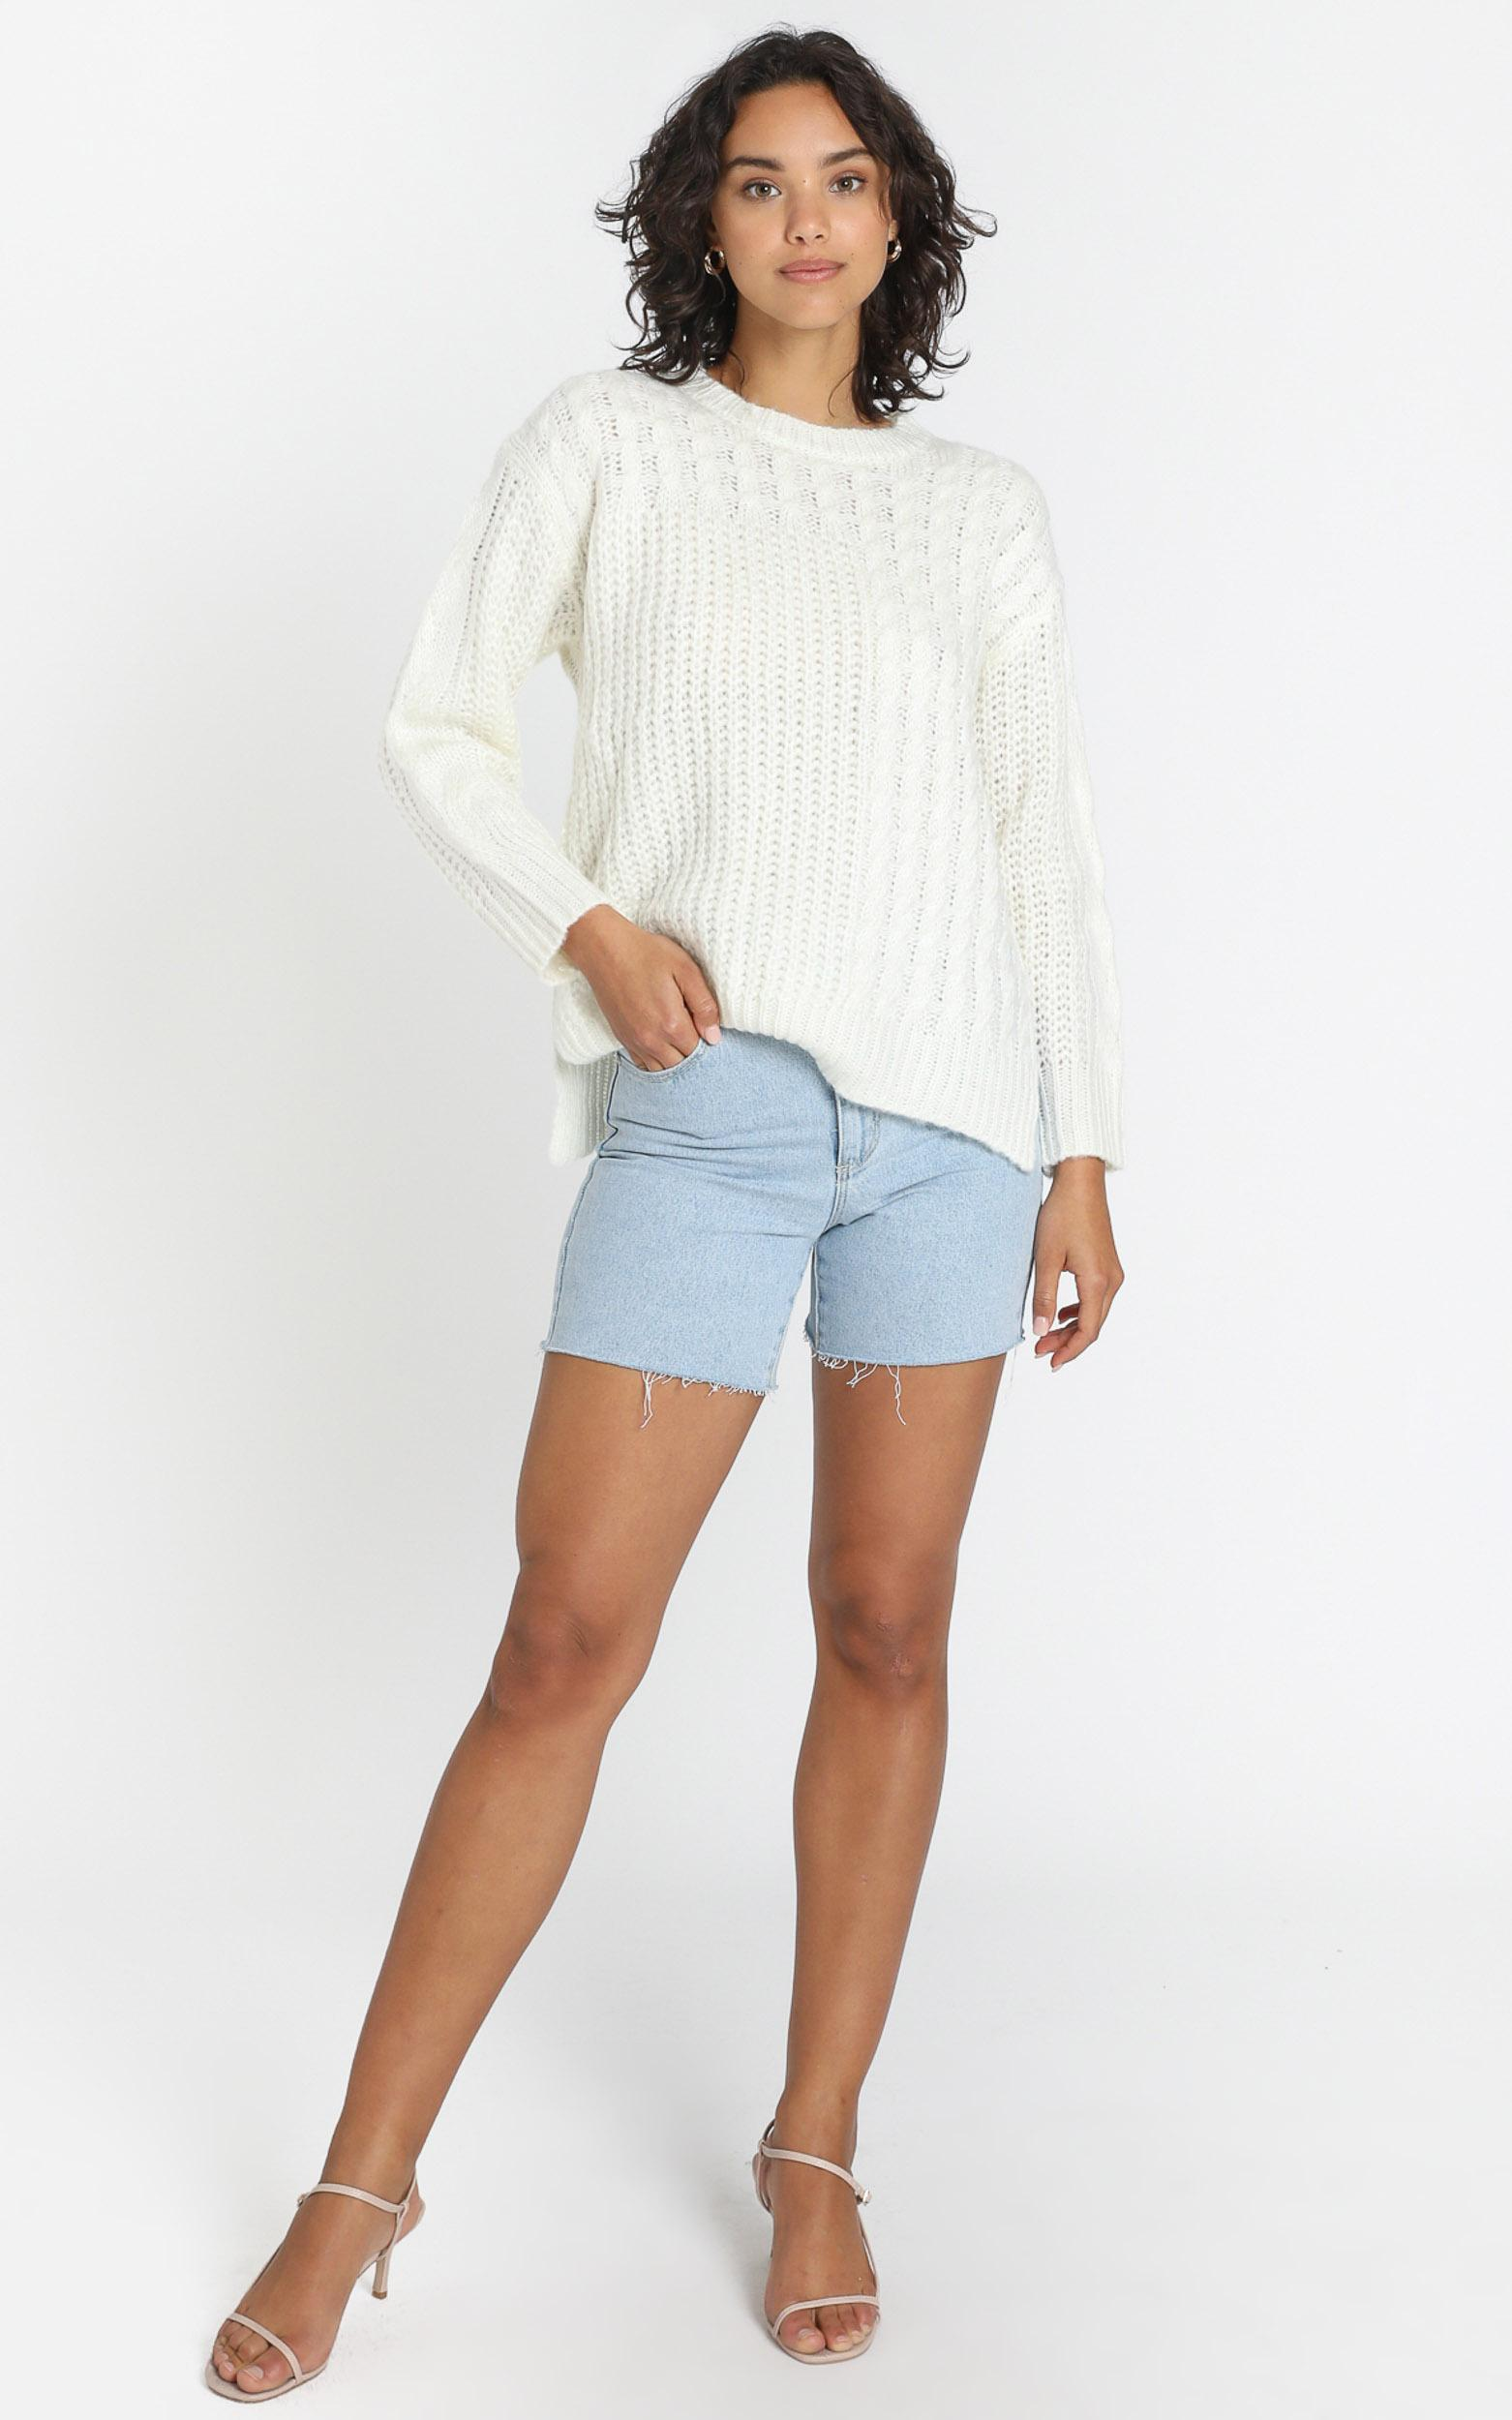 Haley Jumper in White - S/M, White, hi-res image number null